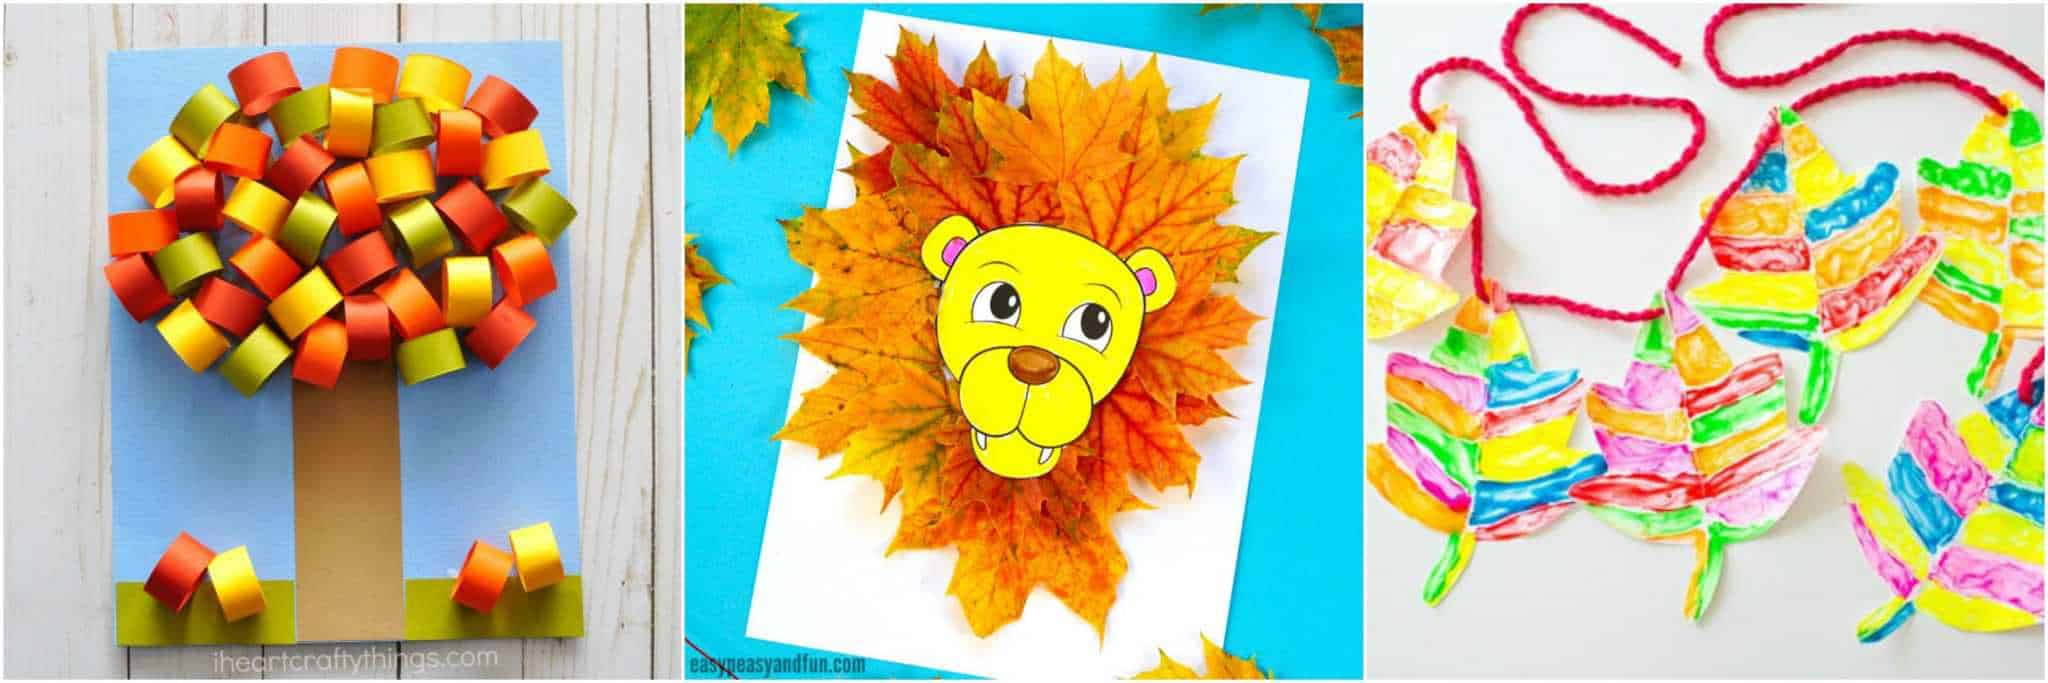 picture regarding Printable Fall Crafts titled 20 Pleasurable Tumble Crafts Children Will Get pleasure from · The Determination Edit